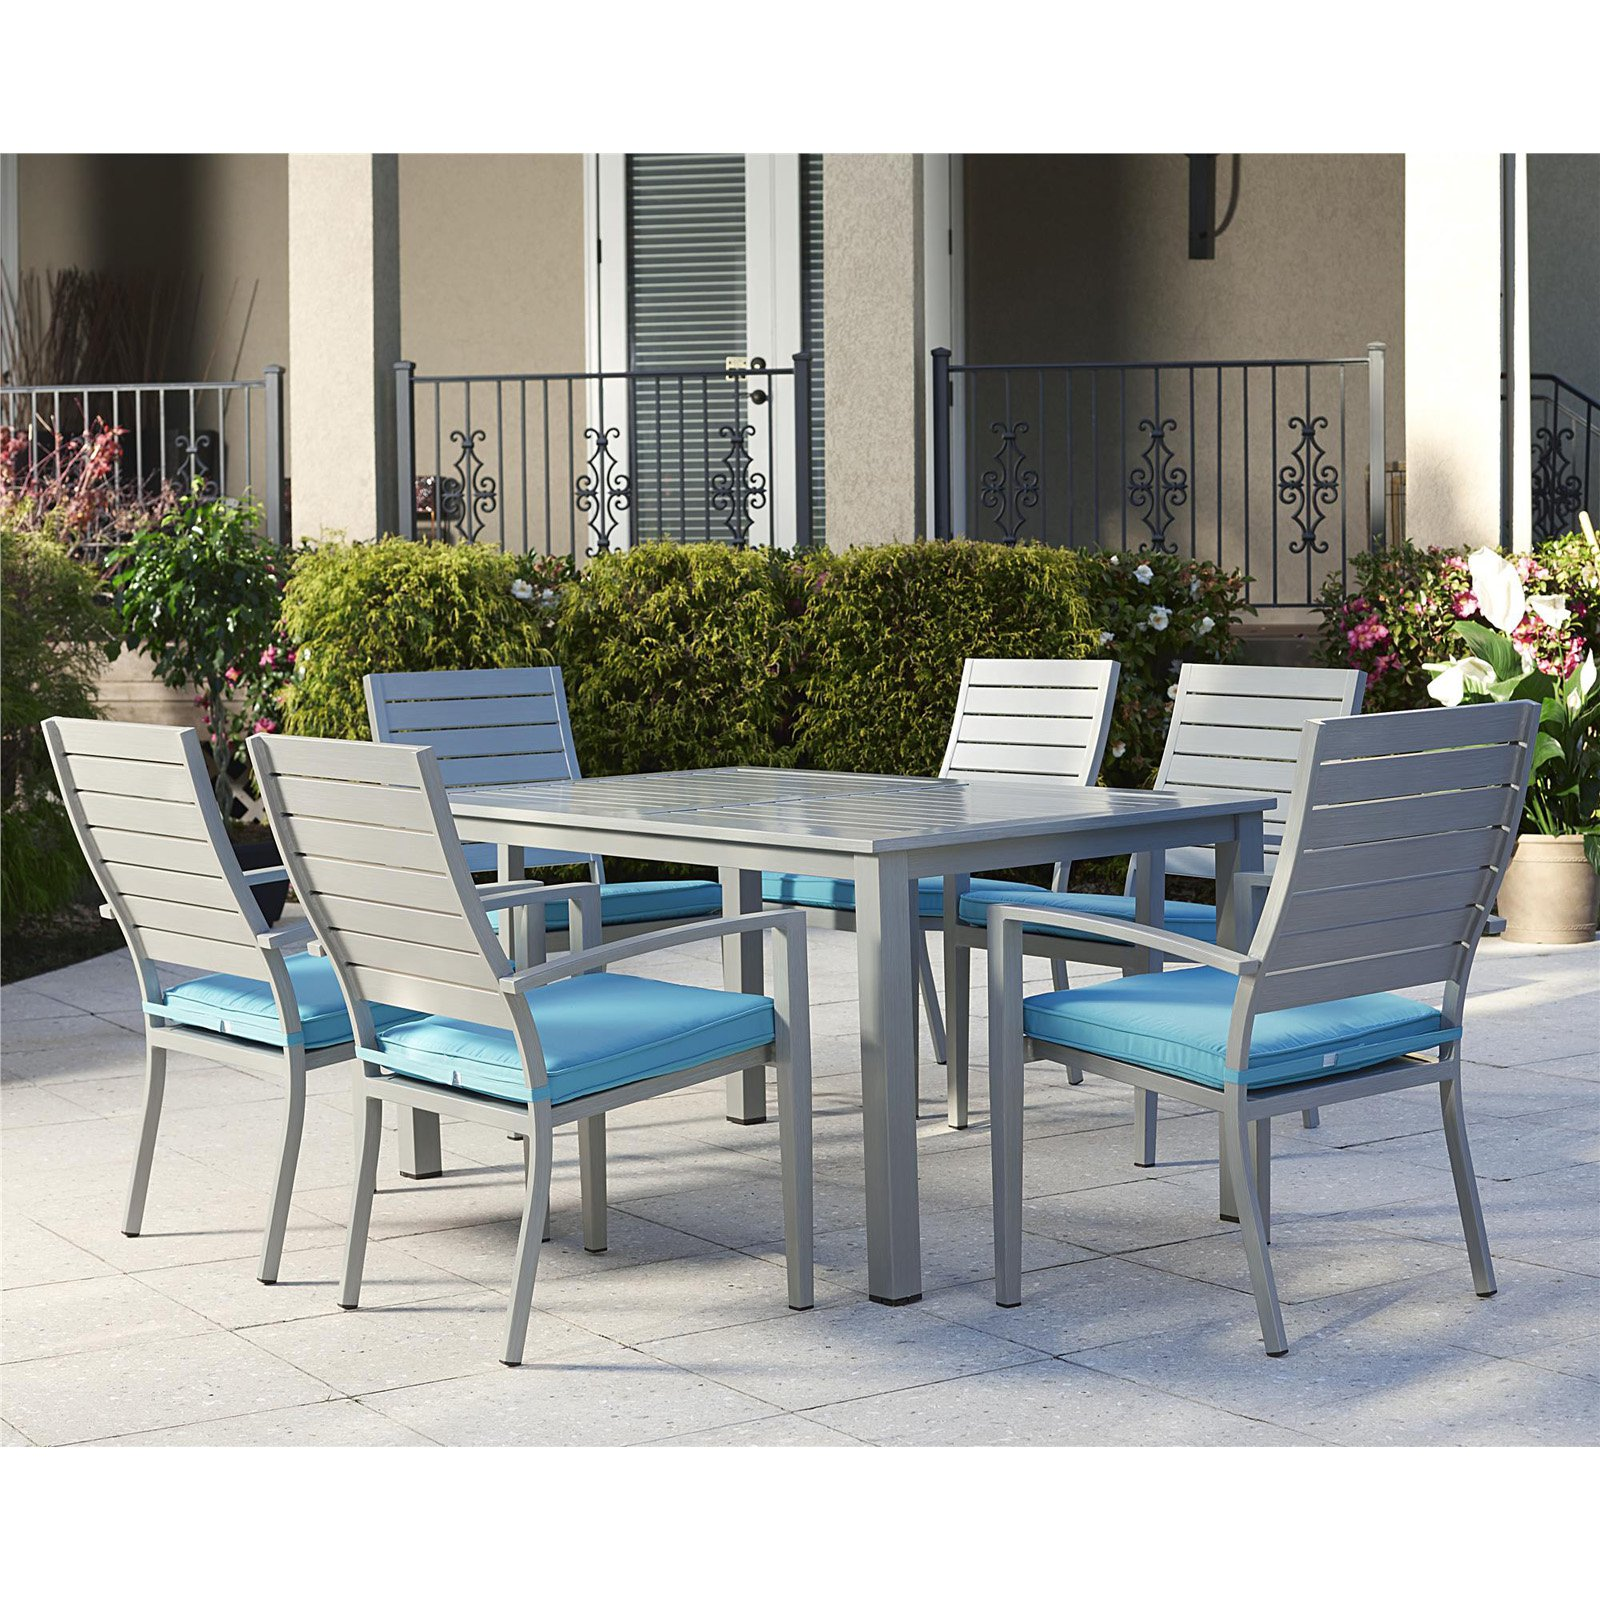 Cosco Outdoor Living Blue Veil 7 Piece Aluminum Dining Set